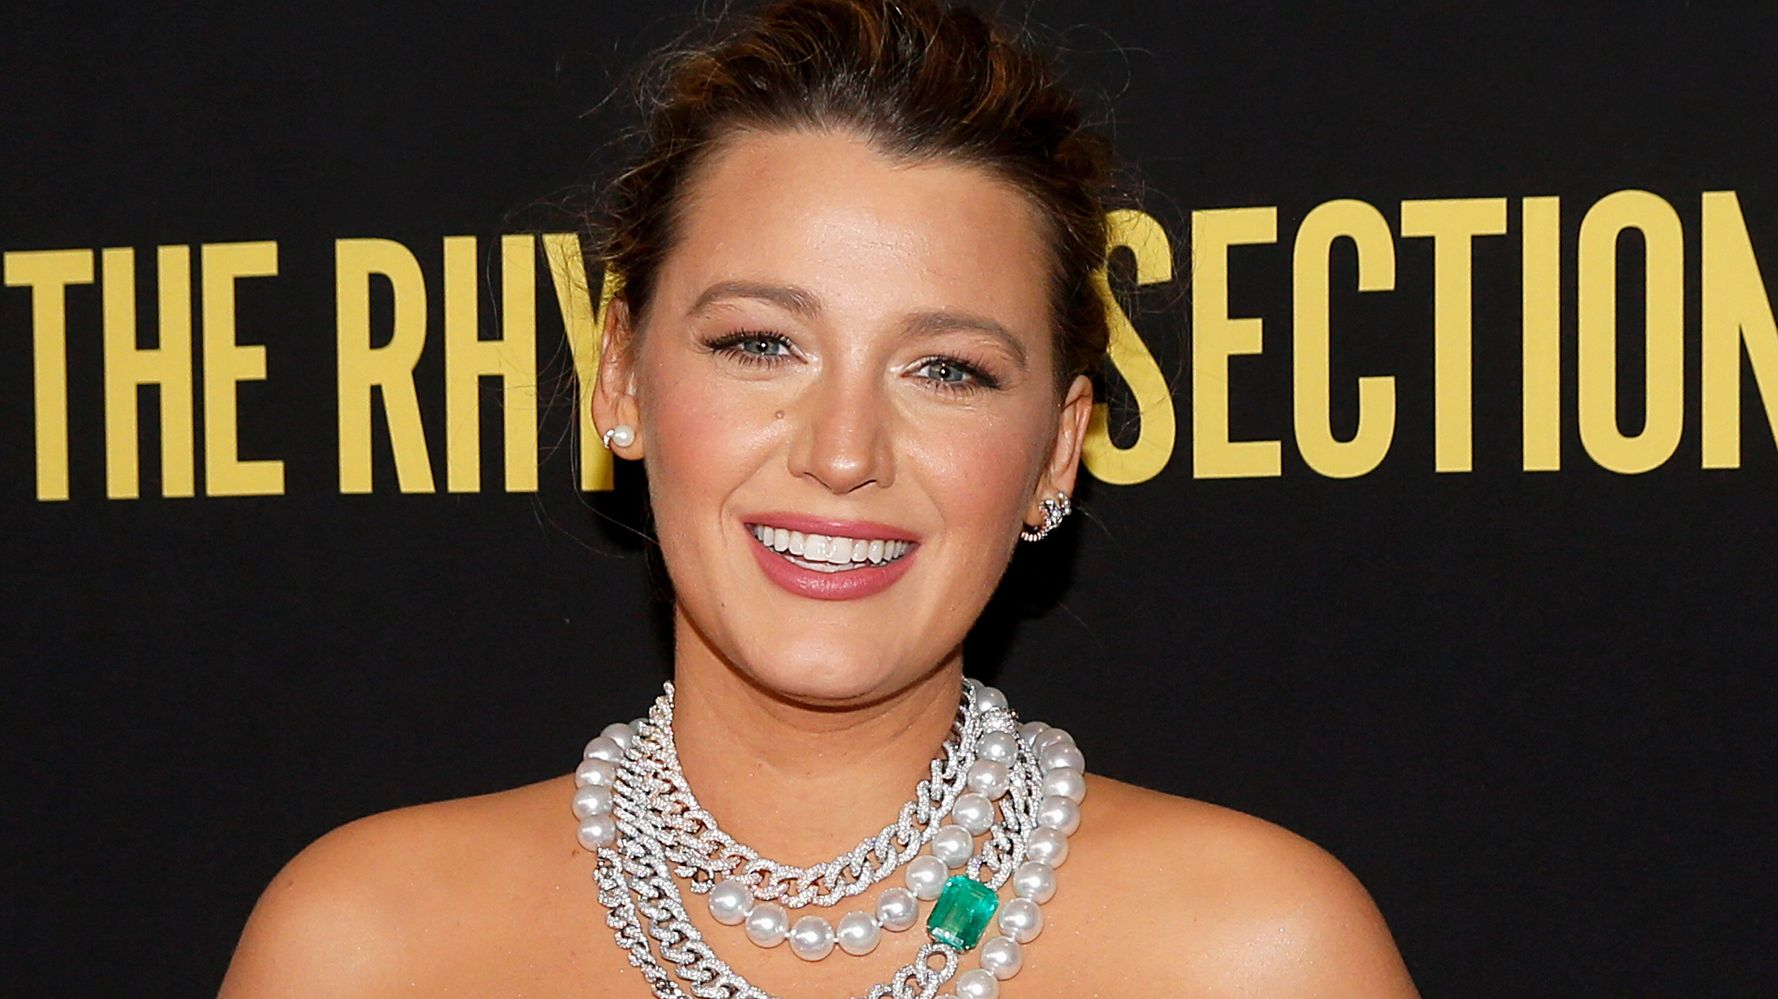 Blake Lively Reveals A Hilarious Connection Between Her Met Gala Looks And The Carpet